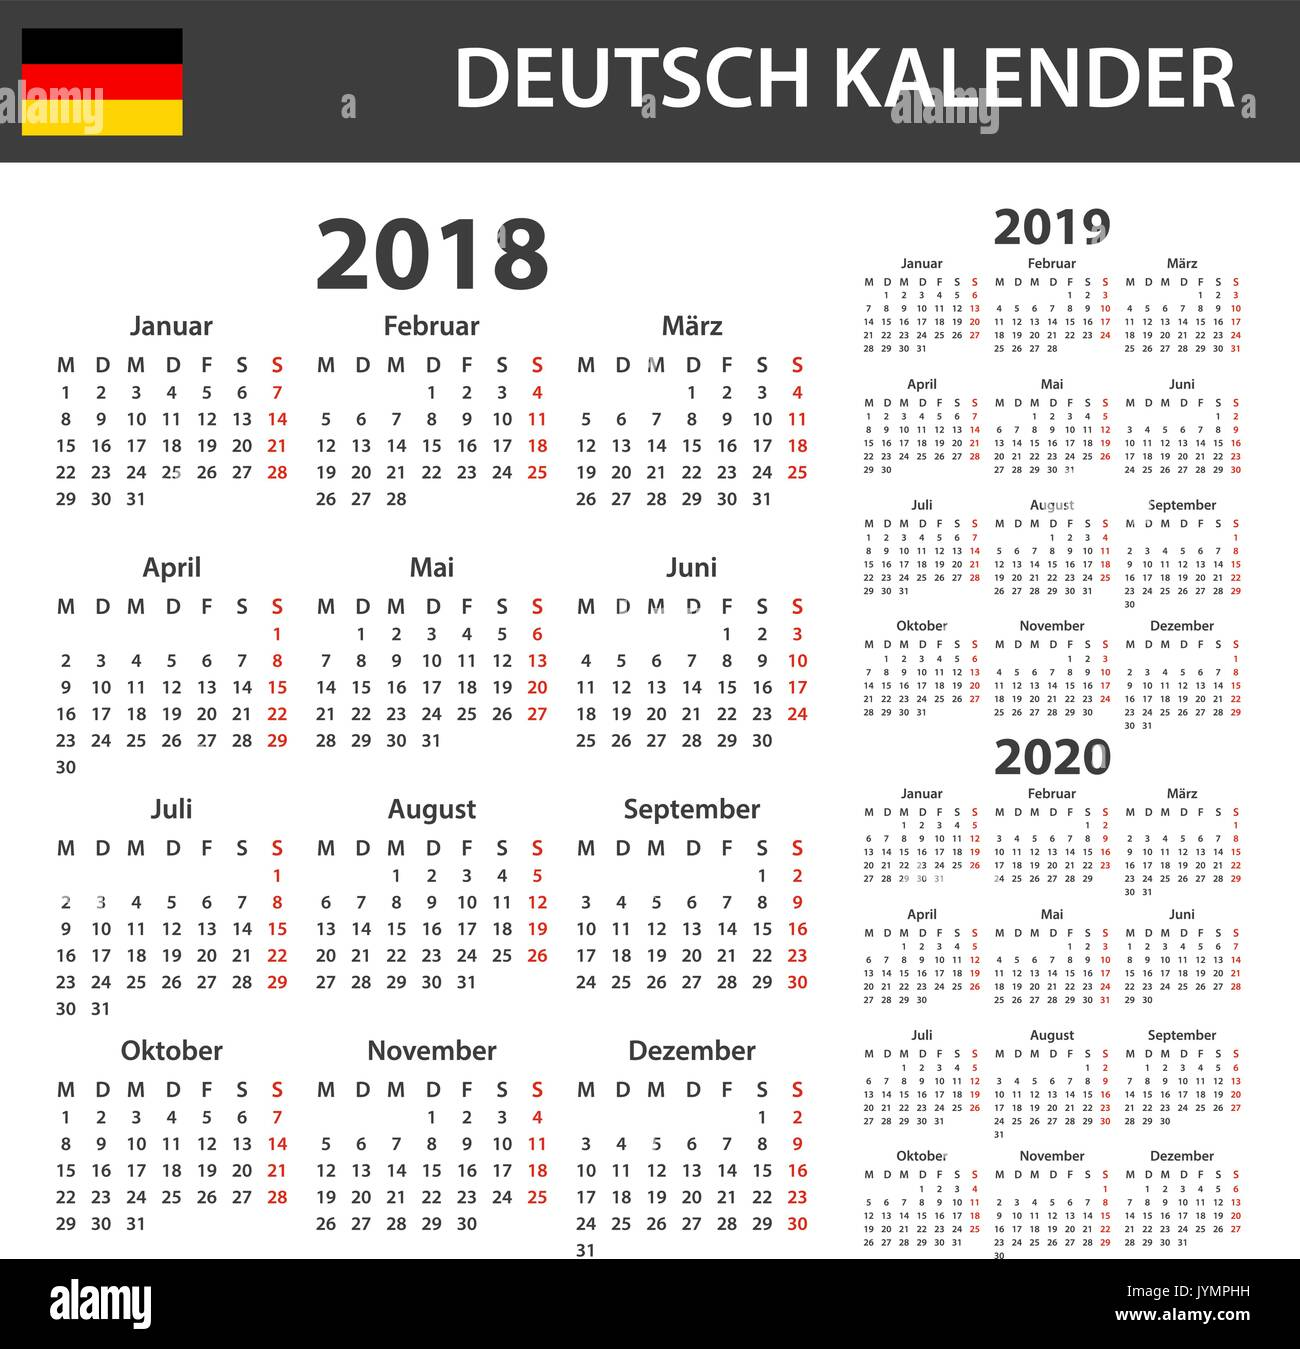 german calendar for 2018 2019 and 2020 scheduler agenda or diary template week starts on monday